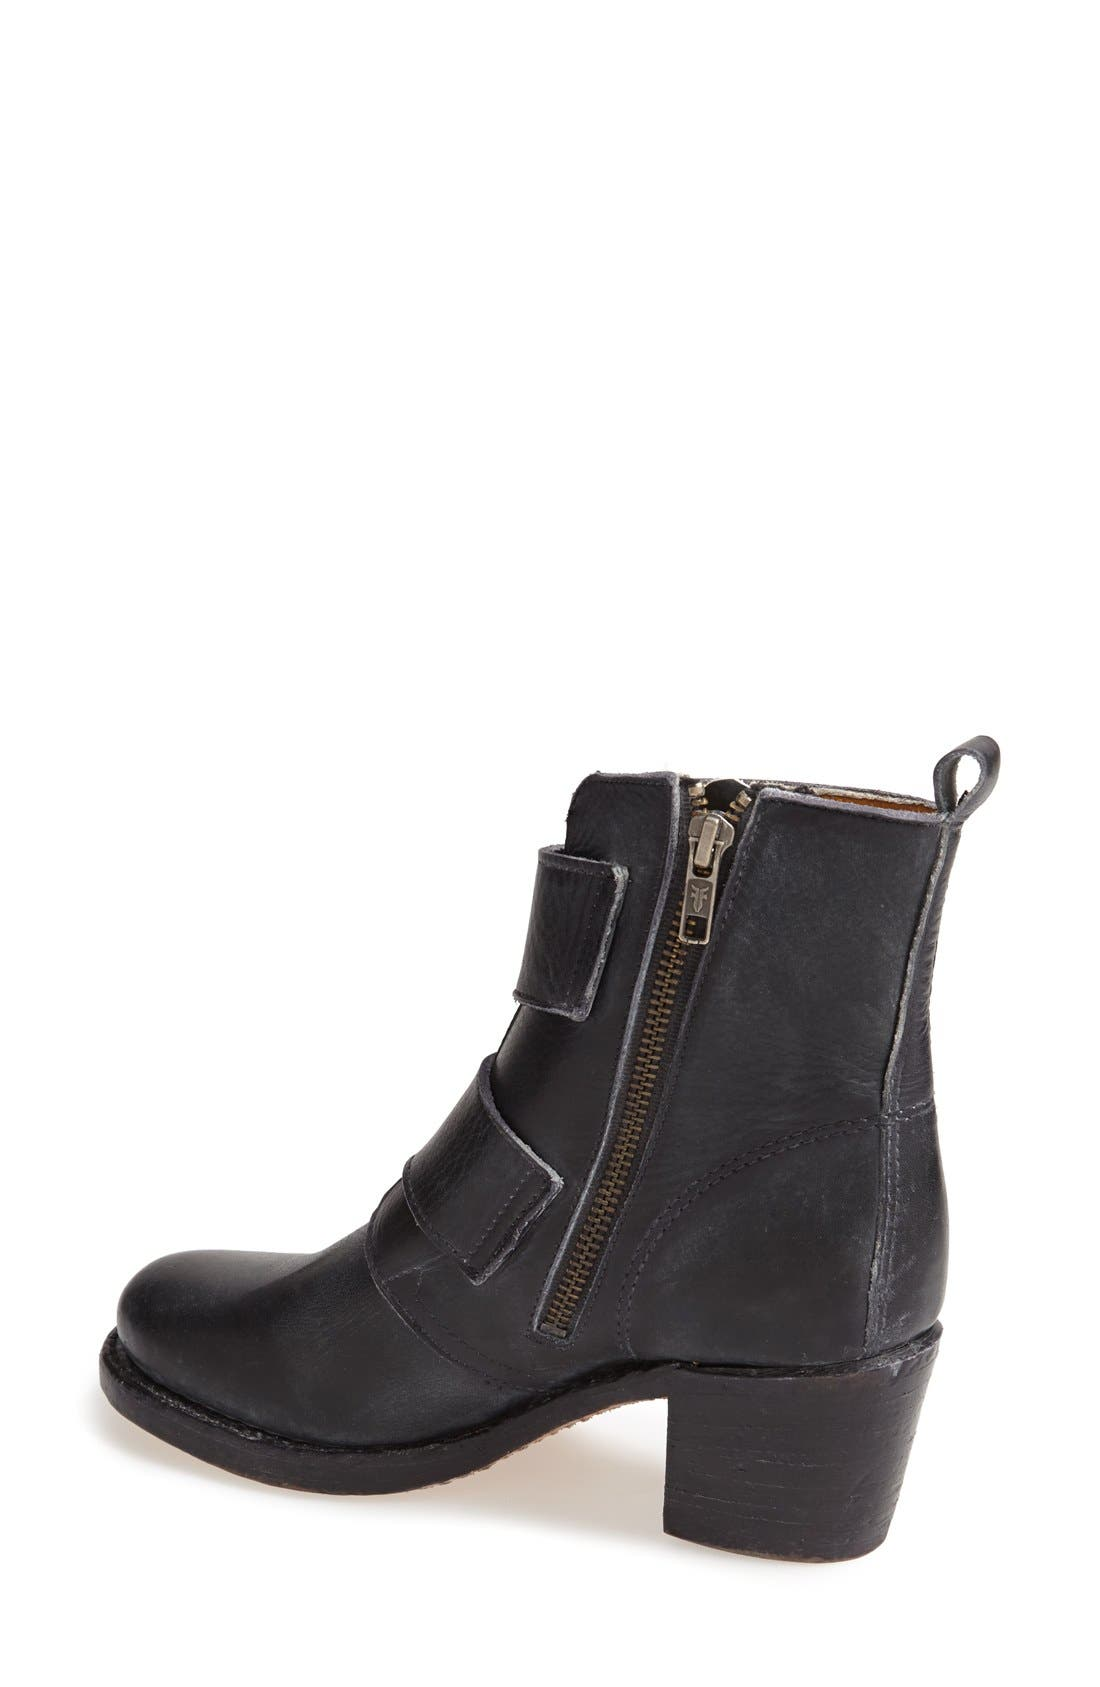 FRYE,                             'Sabrina' Double Buckle Bootie,                             Alternate thumbnail 2, color,                             001